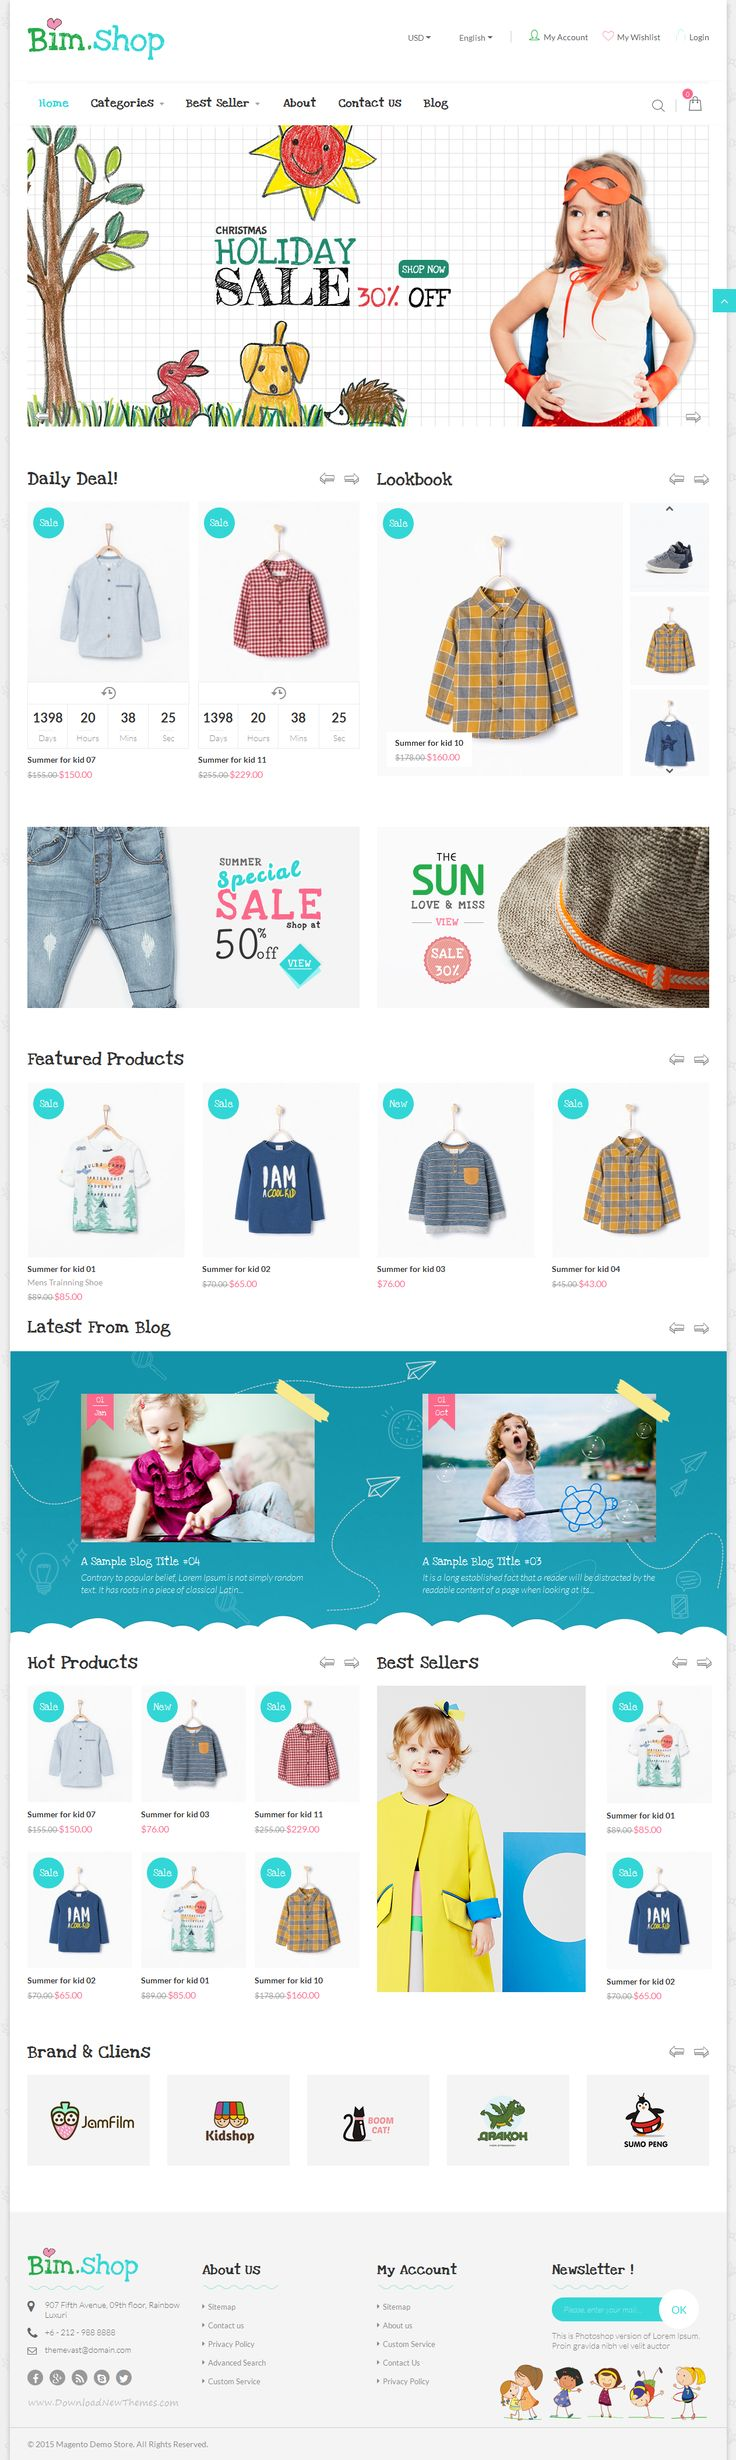 Bimshop – Kidstore Responsive #Magento Theme. It is designed with a simple, clean and clear style crafted for selling digital, technology, computer, technology, accessories, hi-tech products or any other products. #website #template #kids